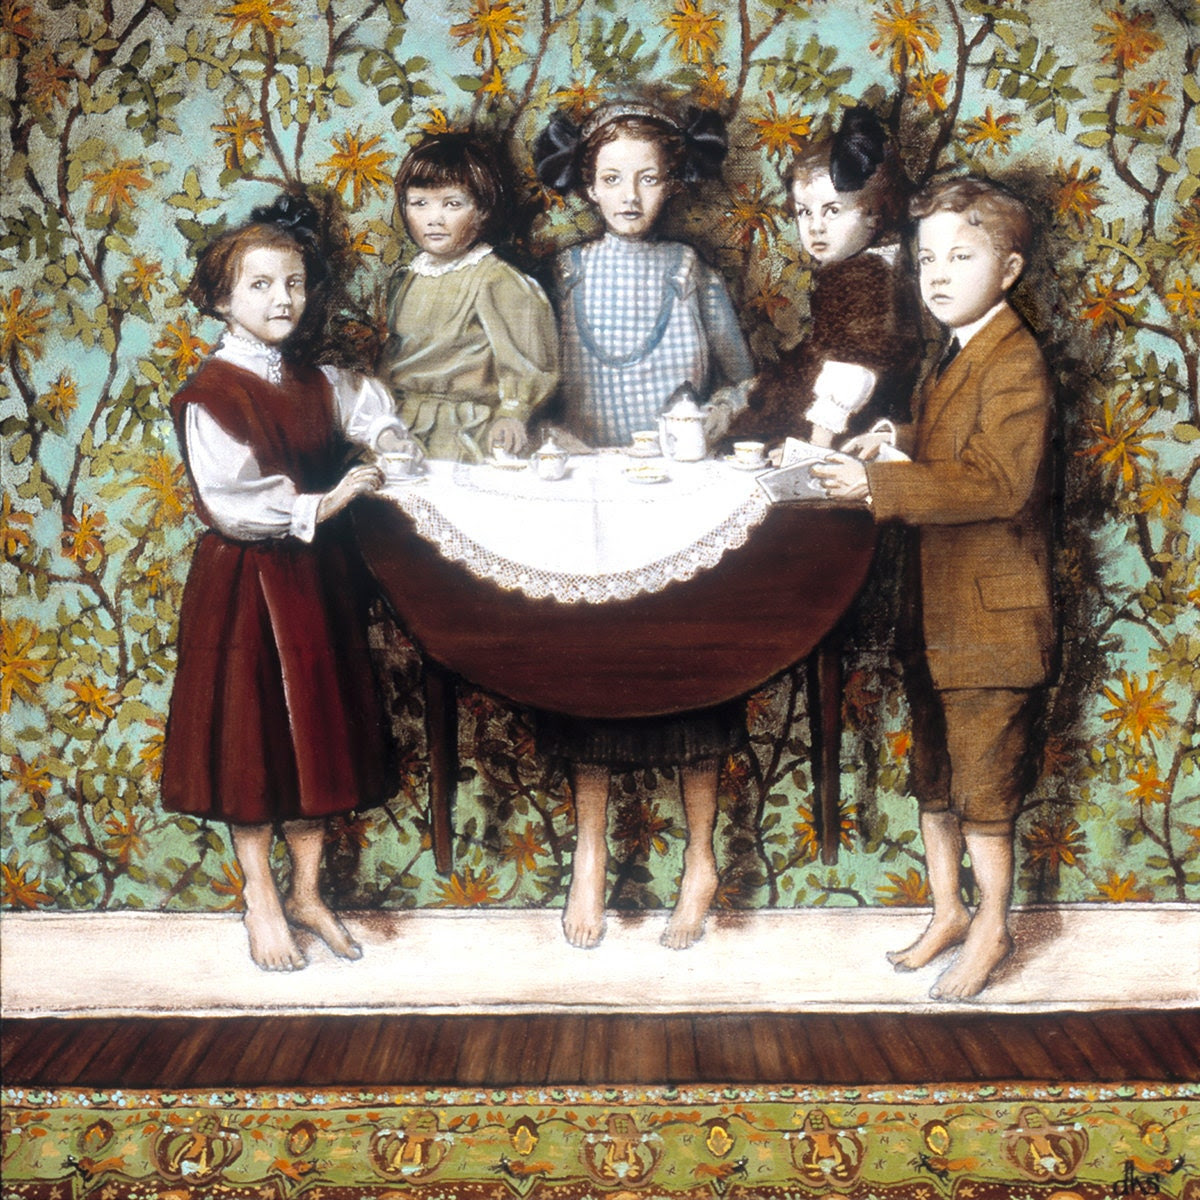 Tea Party, Art PRINT, children, magical, surreal, Victorian, William Morris, 8 x 8, archival from original Oil painting